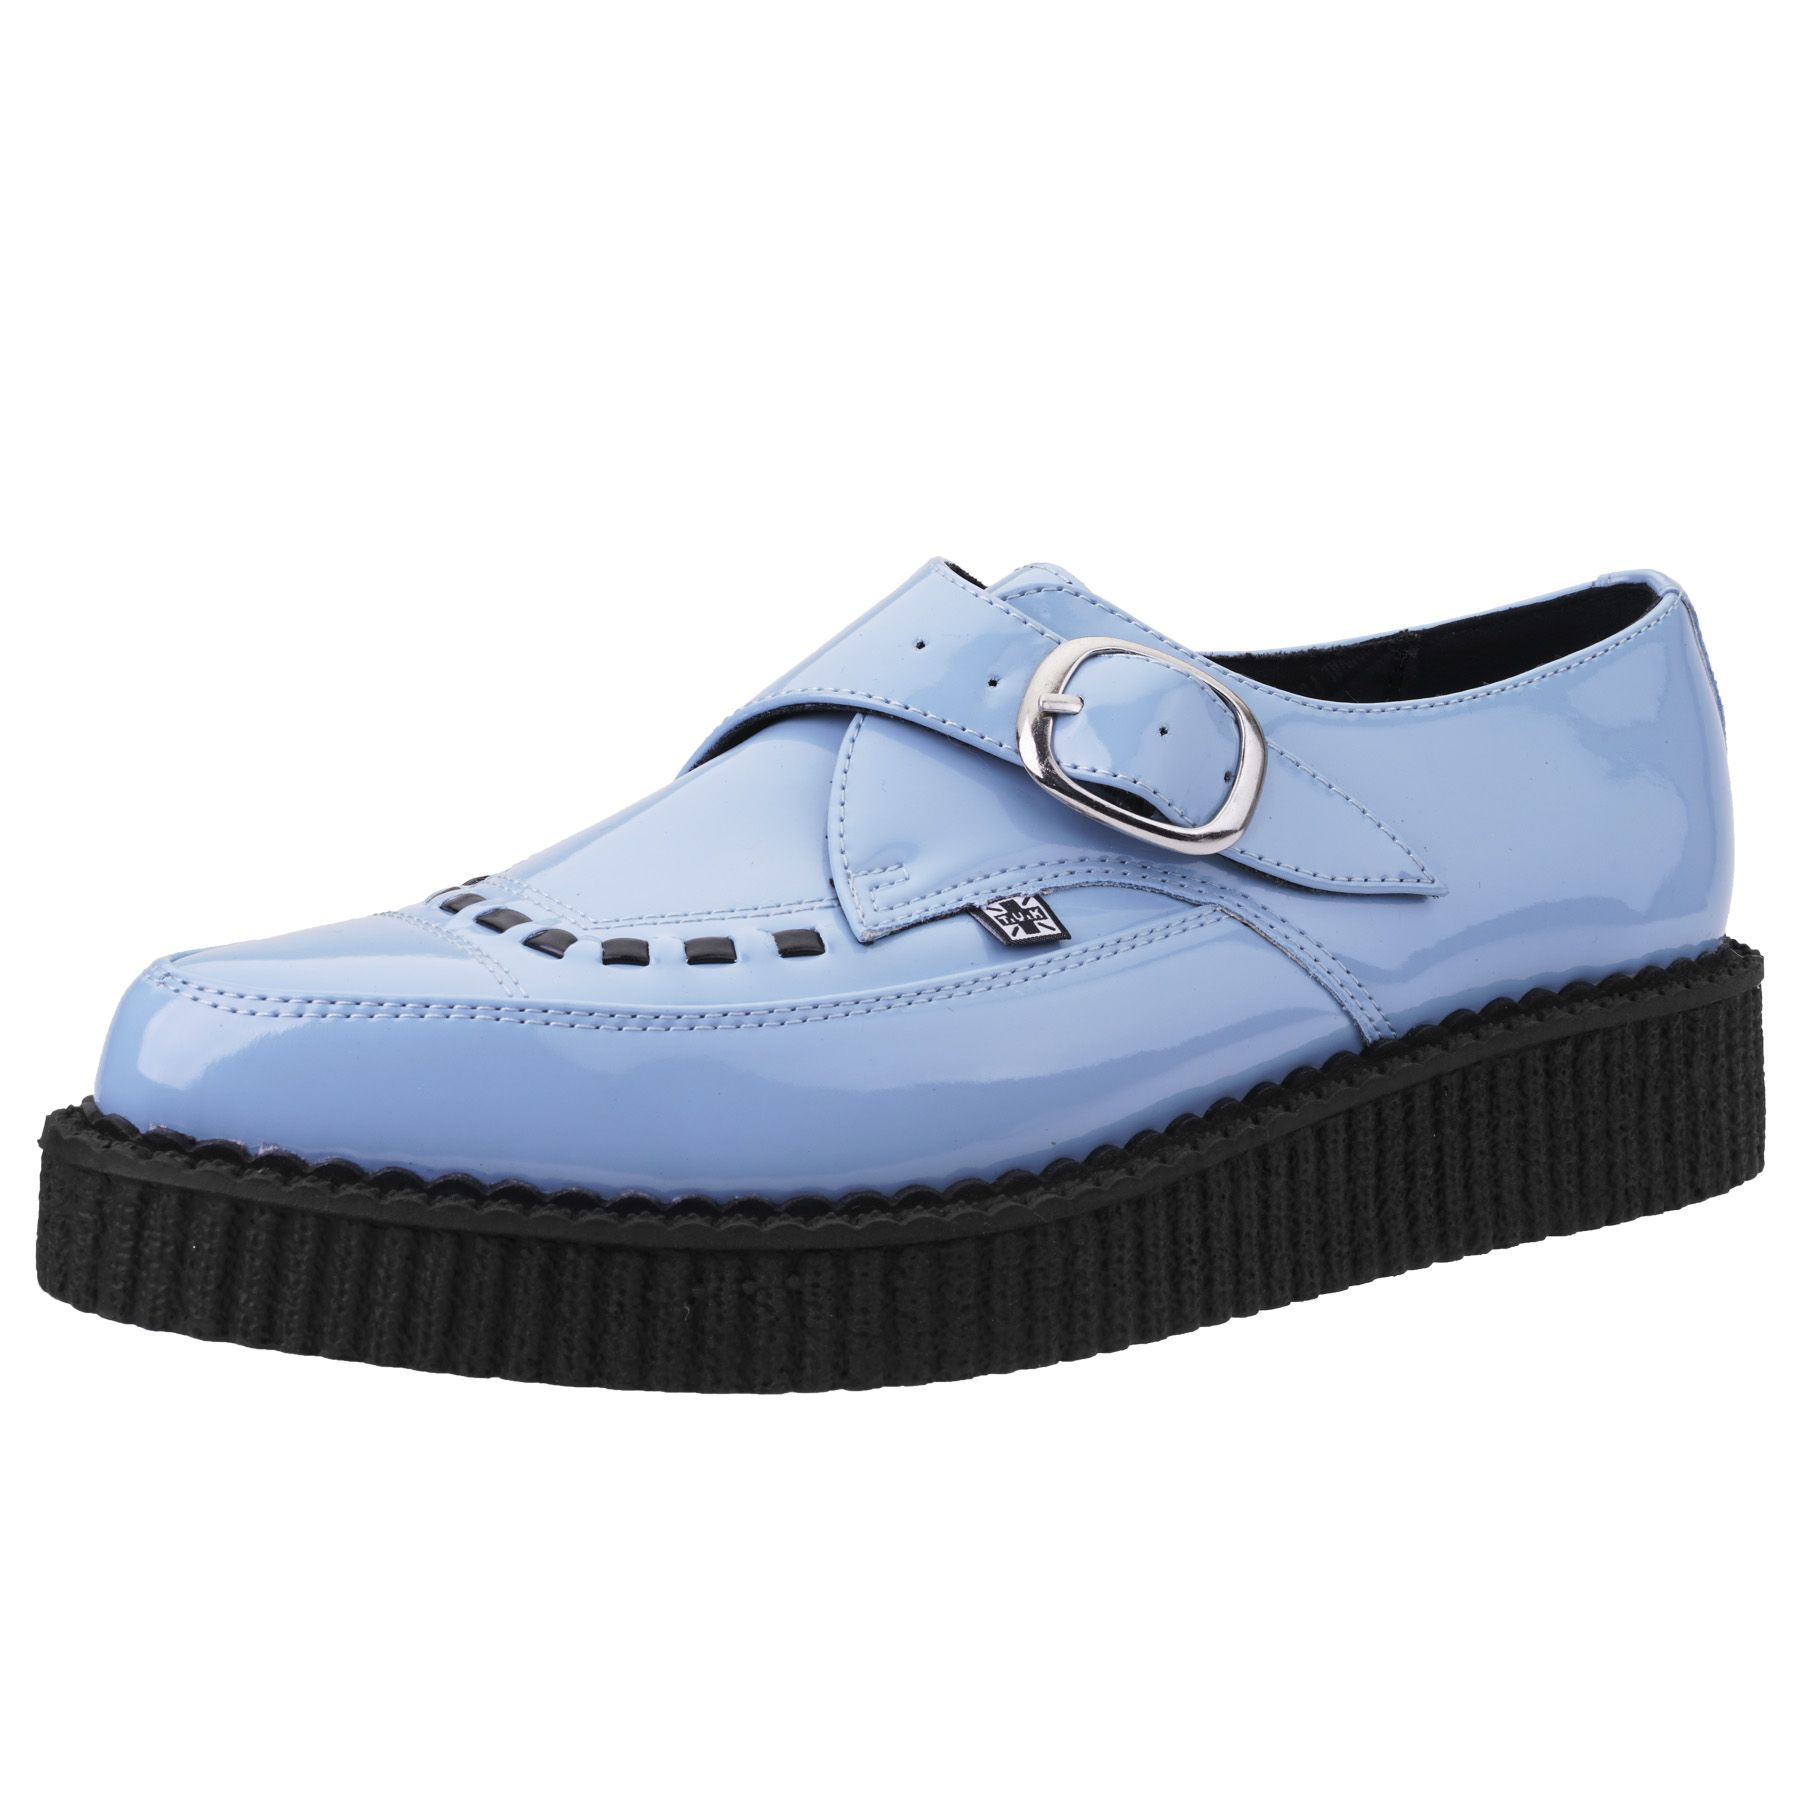 22d29ffcbb8eff T.U.K. Shoes Baby Blue Patent Buckle Pointed Creeper A9211